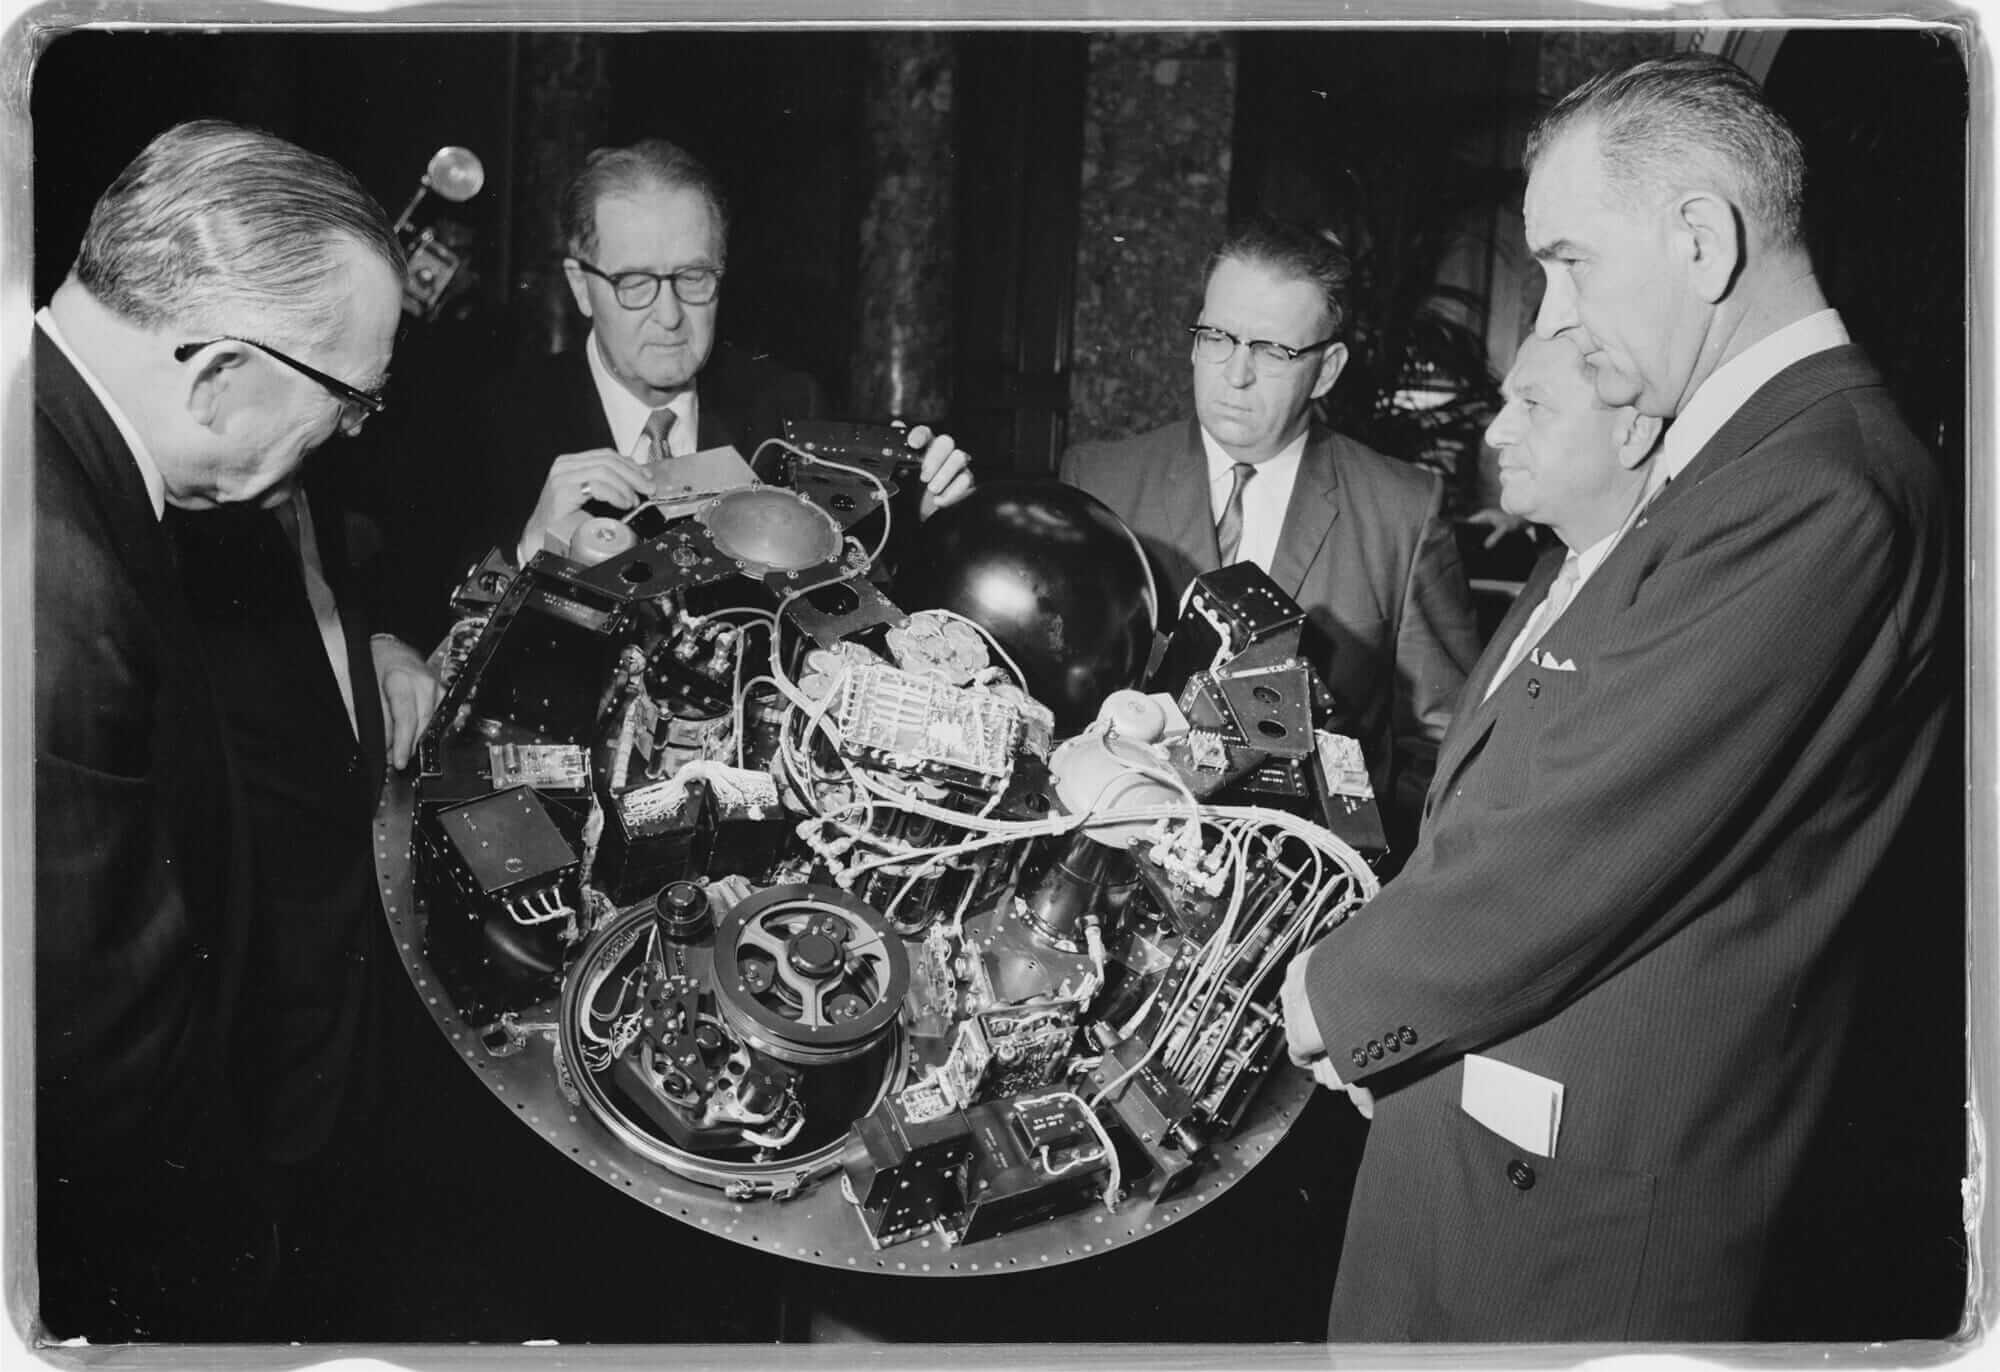 A showing of NASA's TIROS I satellite and its circuitry to Lyndon B. Johnson and U.S. senators on April 4, 1960.